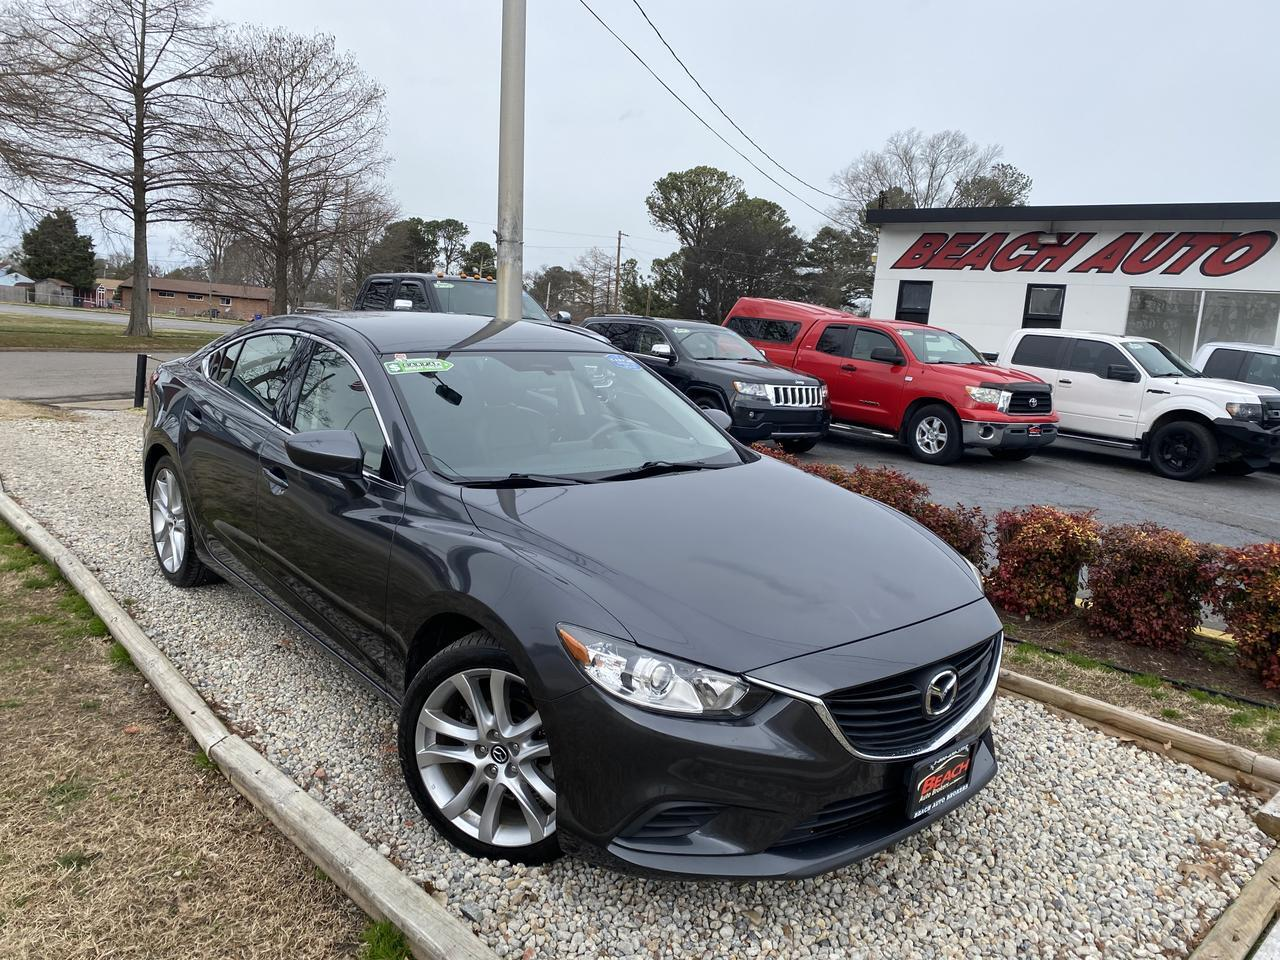 2016 MAZDA 6 I TOURING, WARRANTY, LEATHER, BACKUP CAM, PARKING SENSORS, AUX/USB PORT, BLUETOOTH, CLEAN CARFAX! Norfolk VA